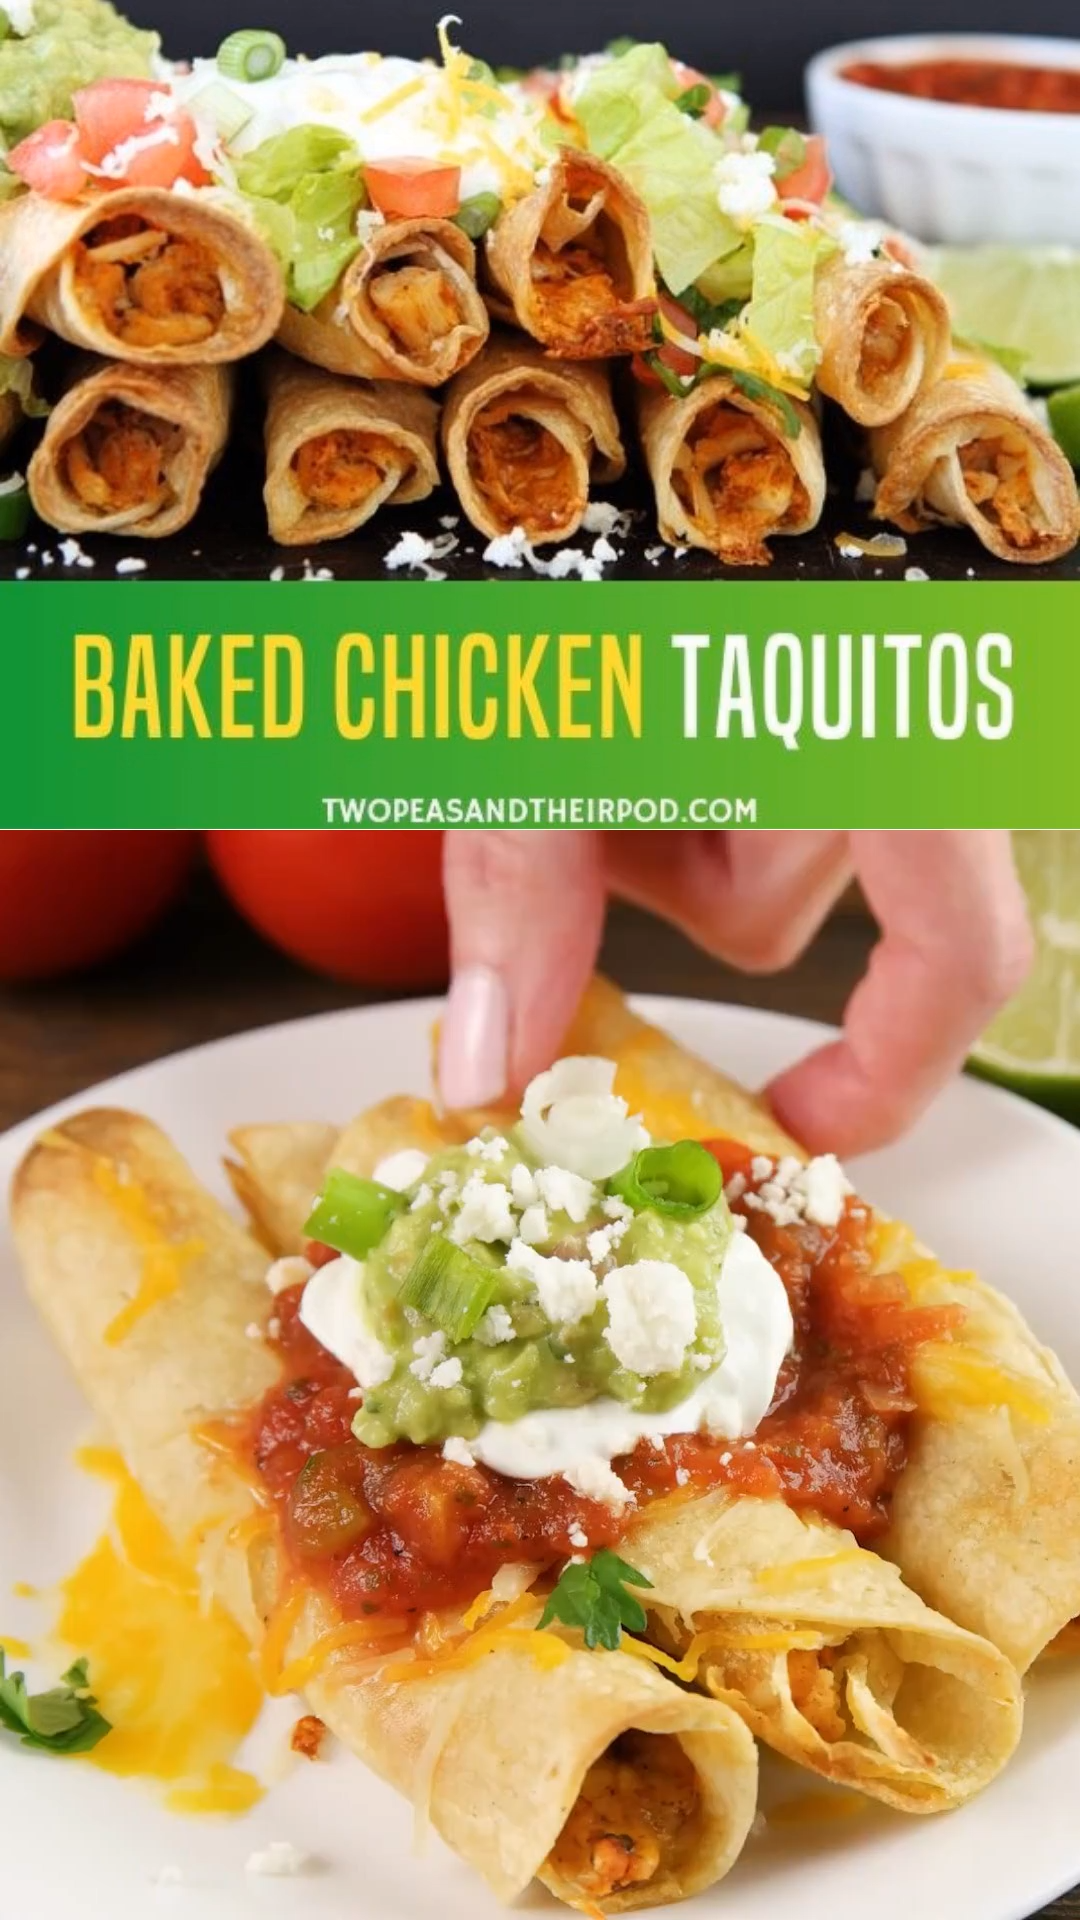 Baked Chicken Taquitos #easymexicanfoodrecipes